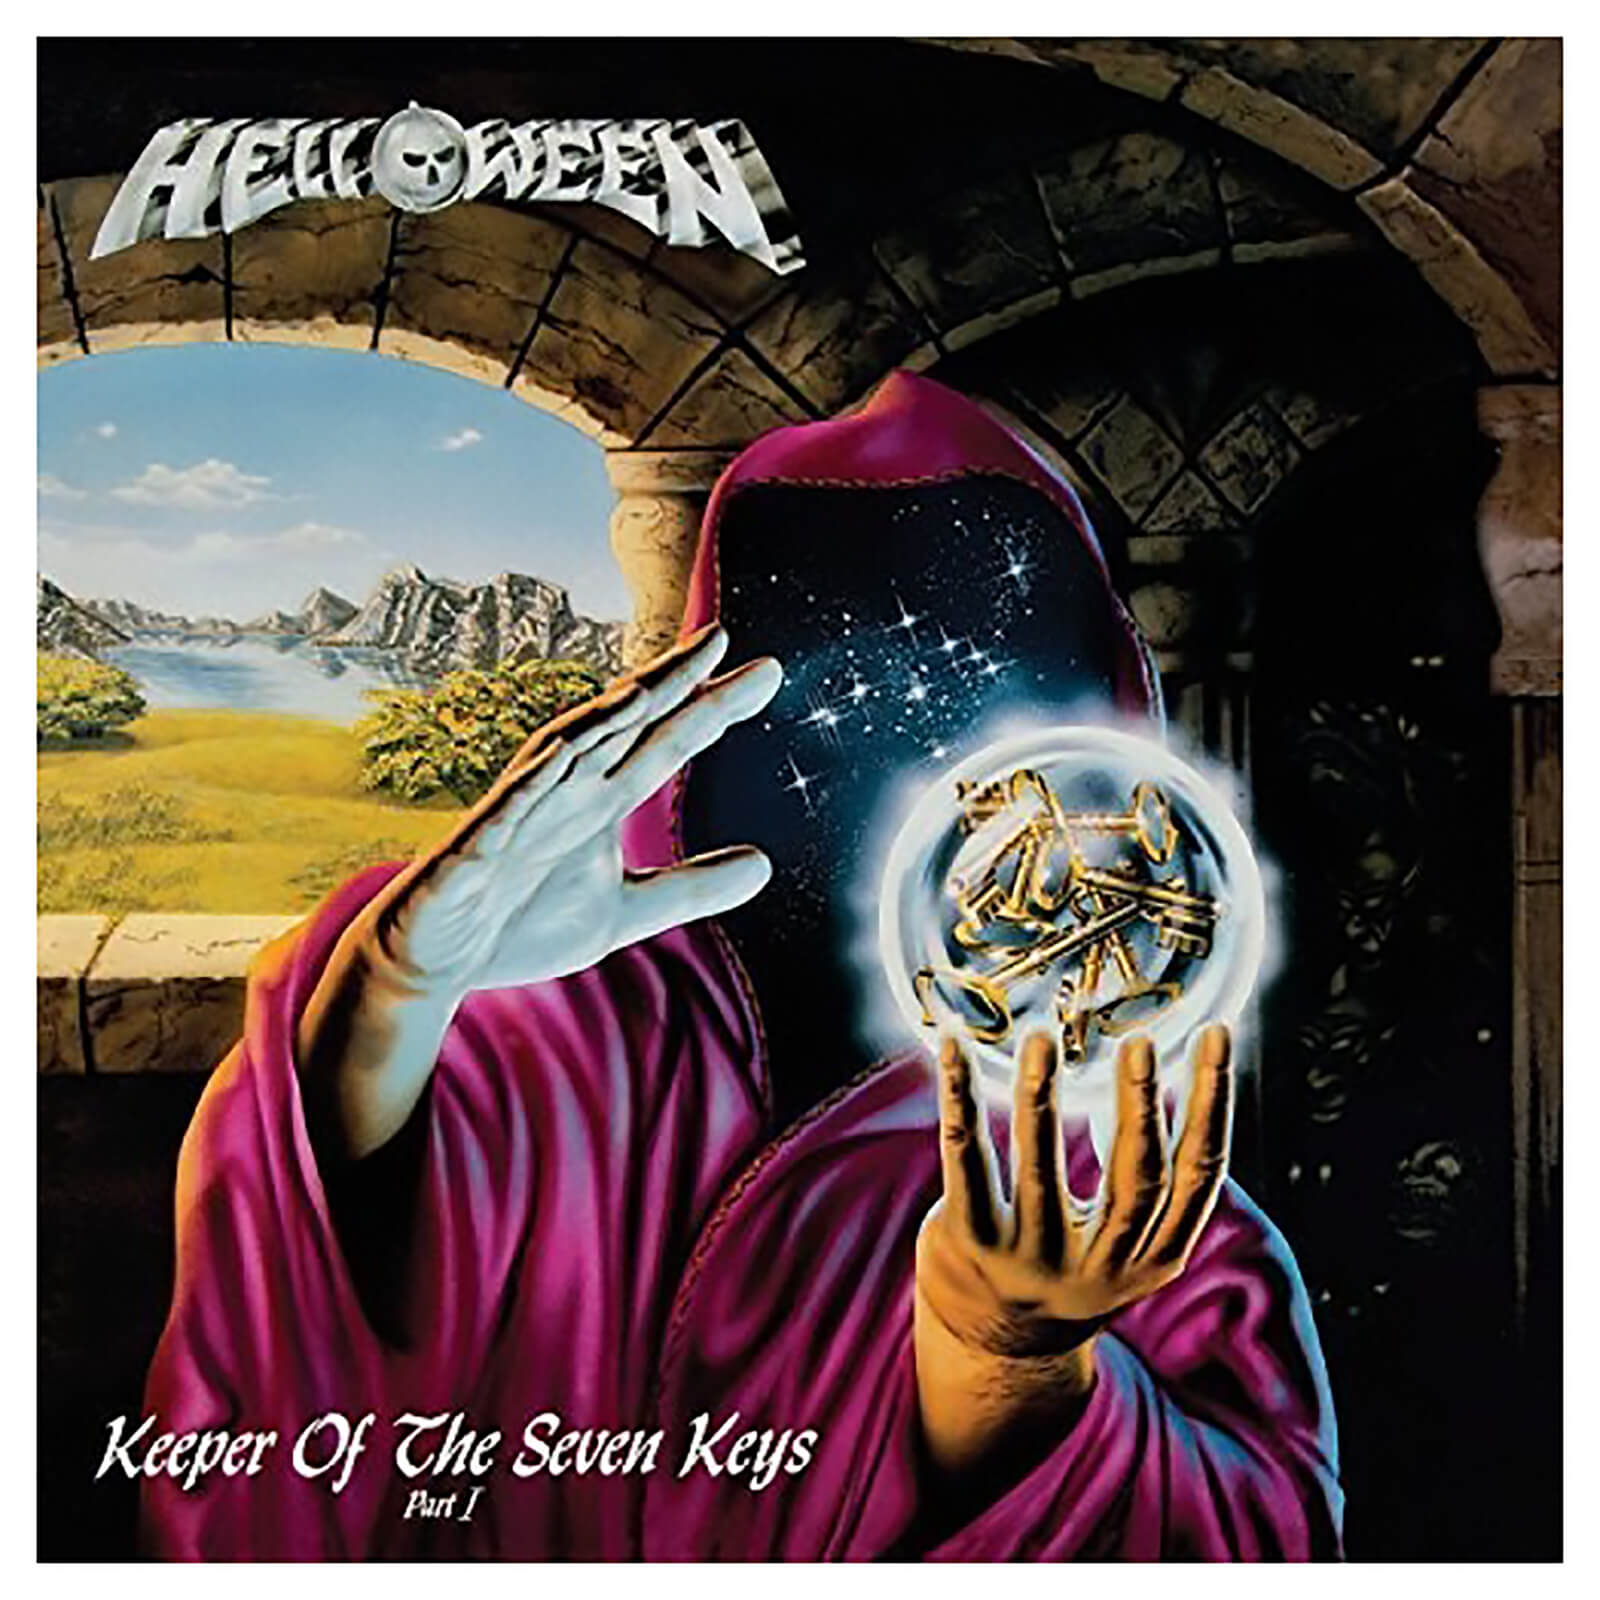 Helloween - Keeper Of The Seven Keys Pt 1 - Vinyl